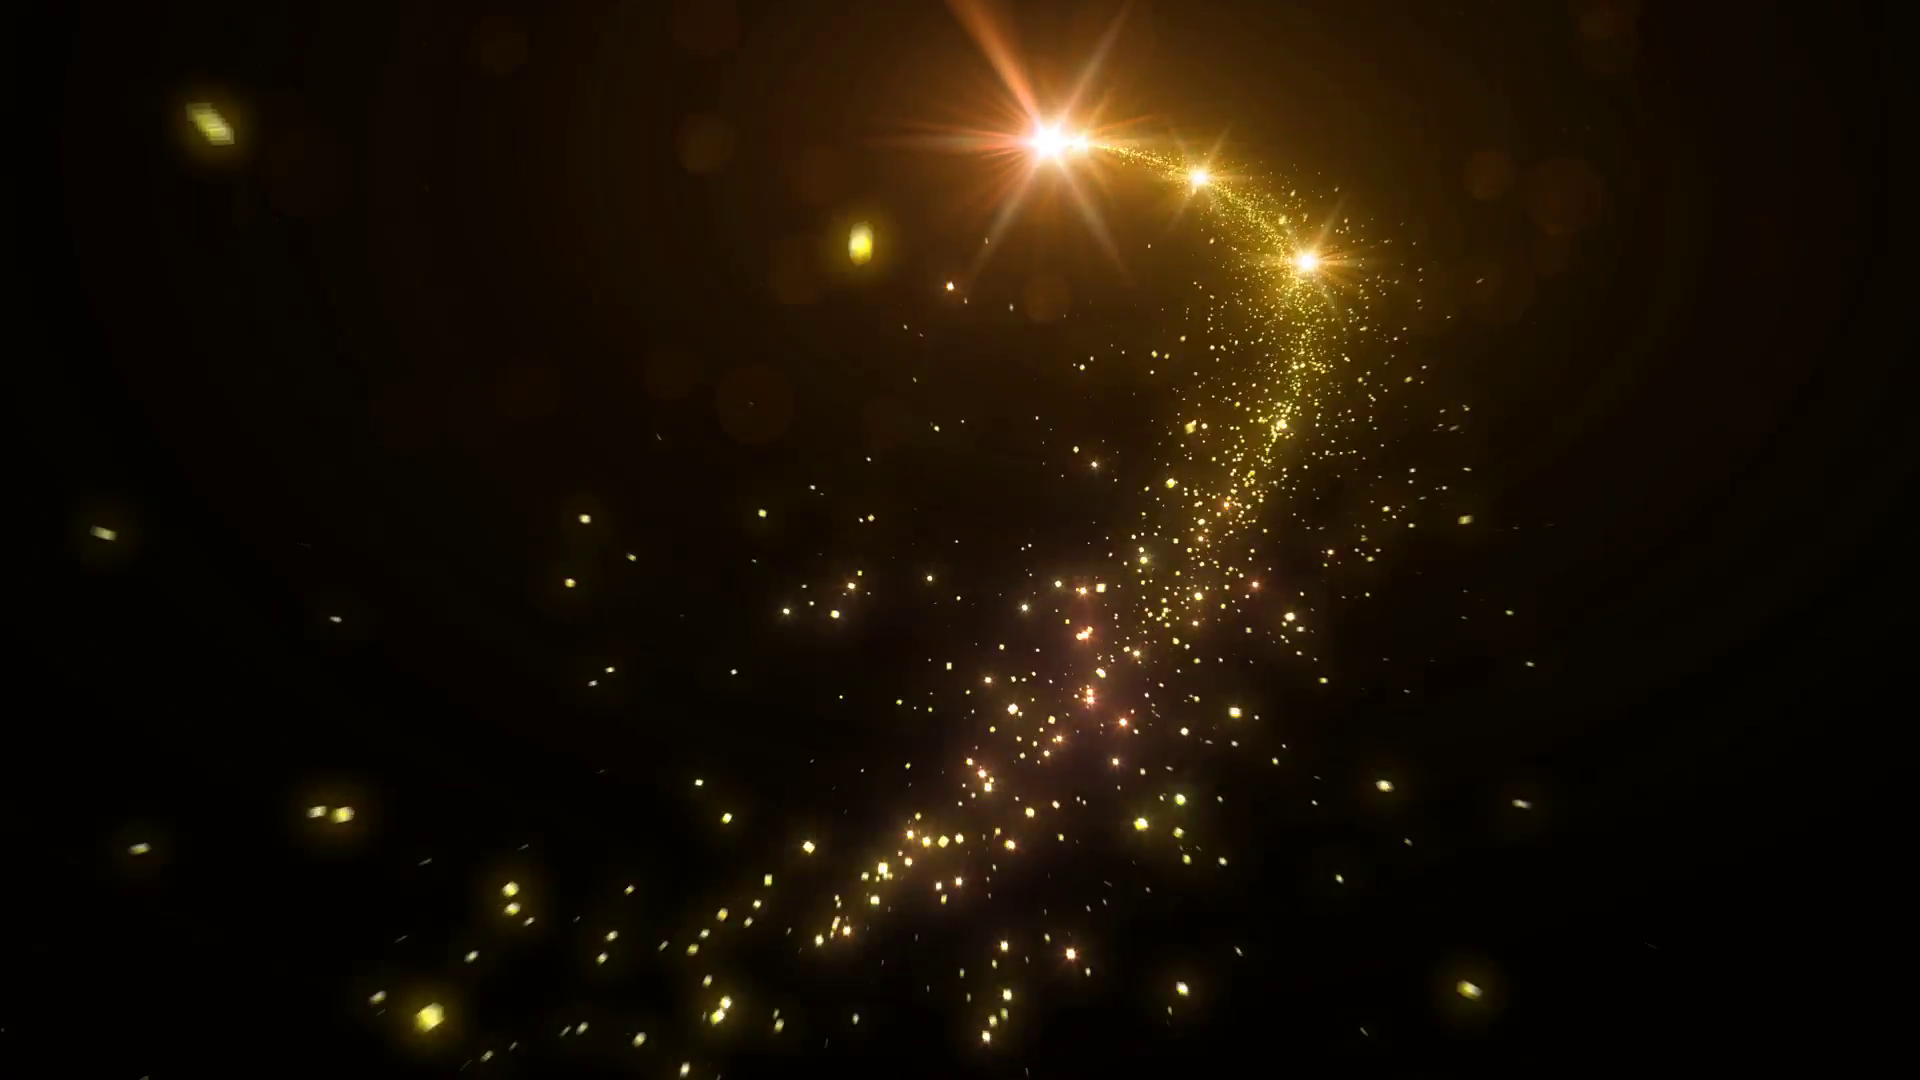 Light flare png sparkle. Lens flares and particles